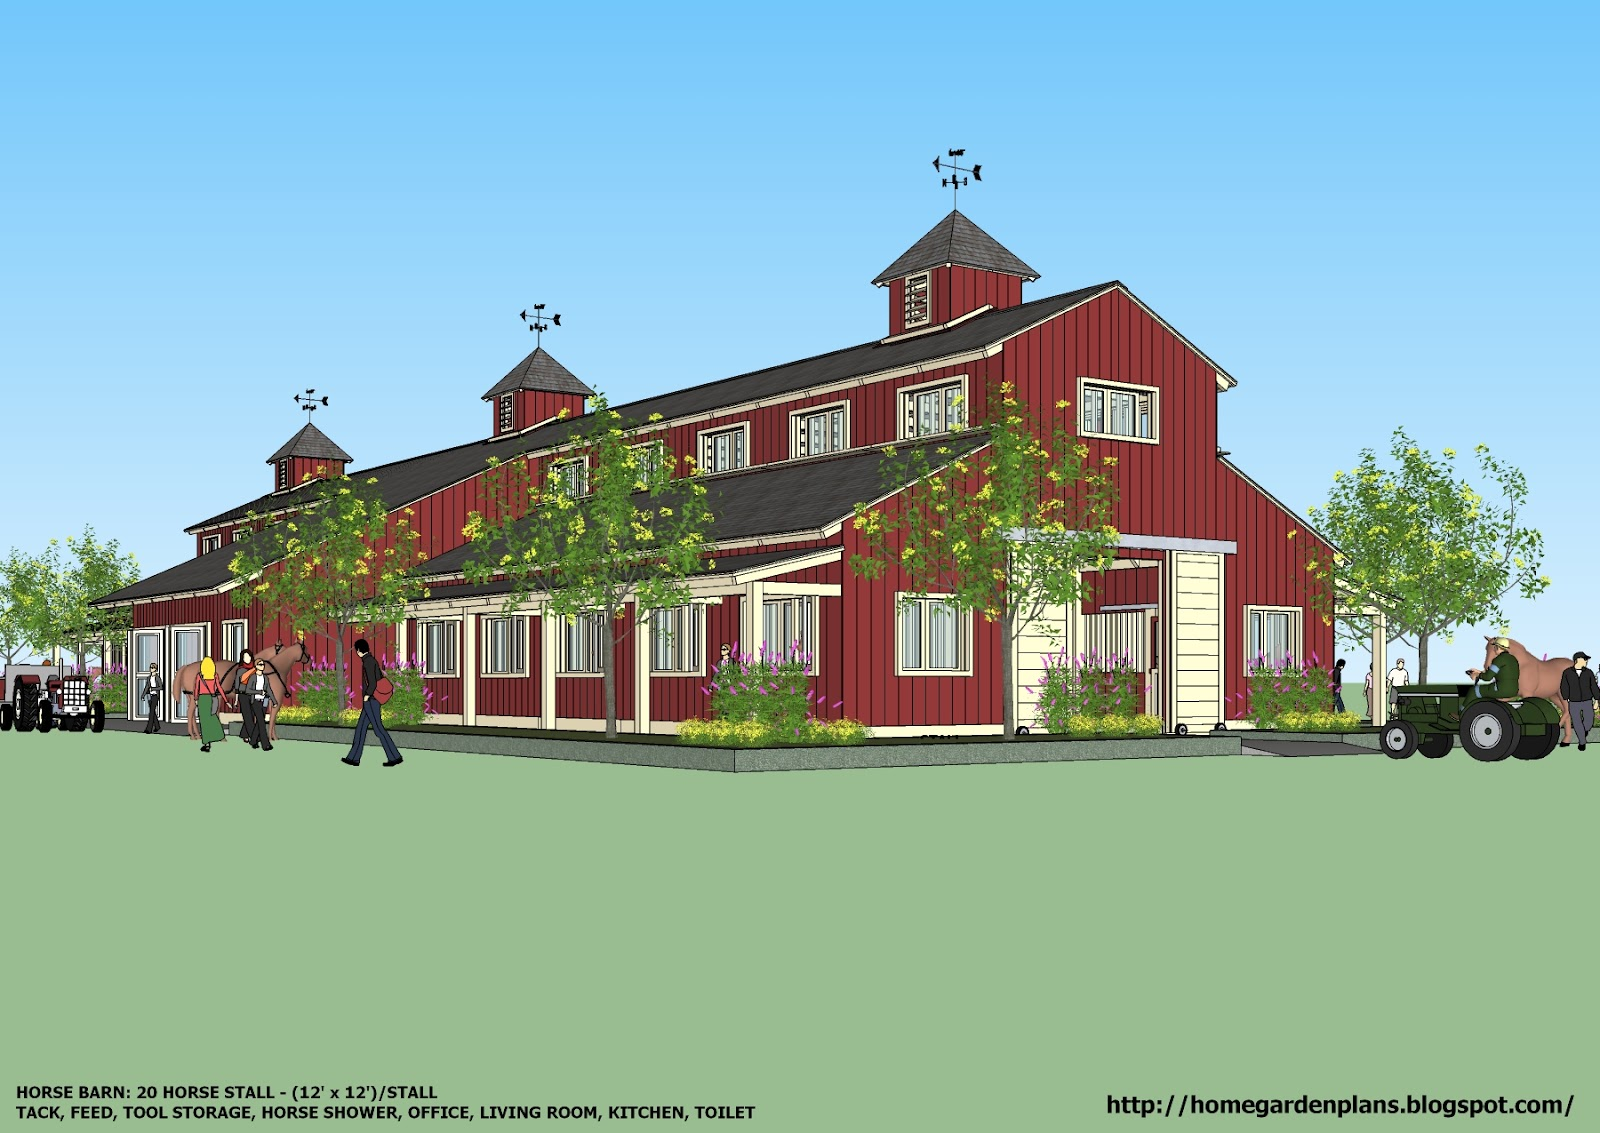 Home garden plans horse barns Barn designs